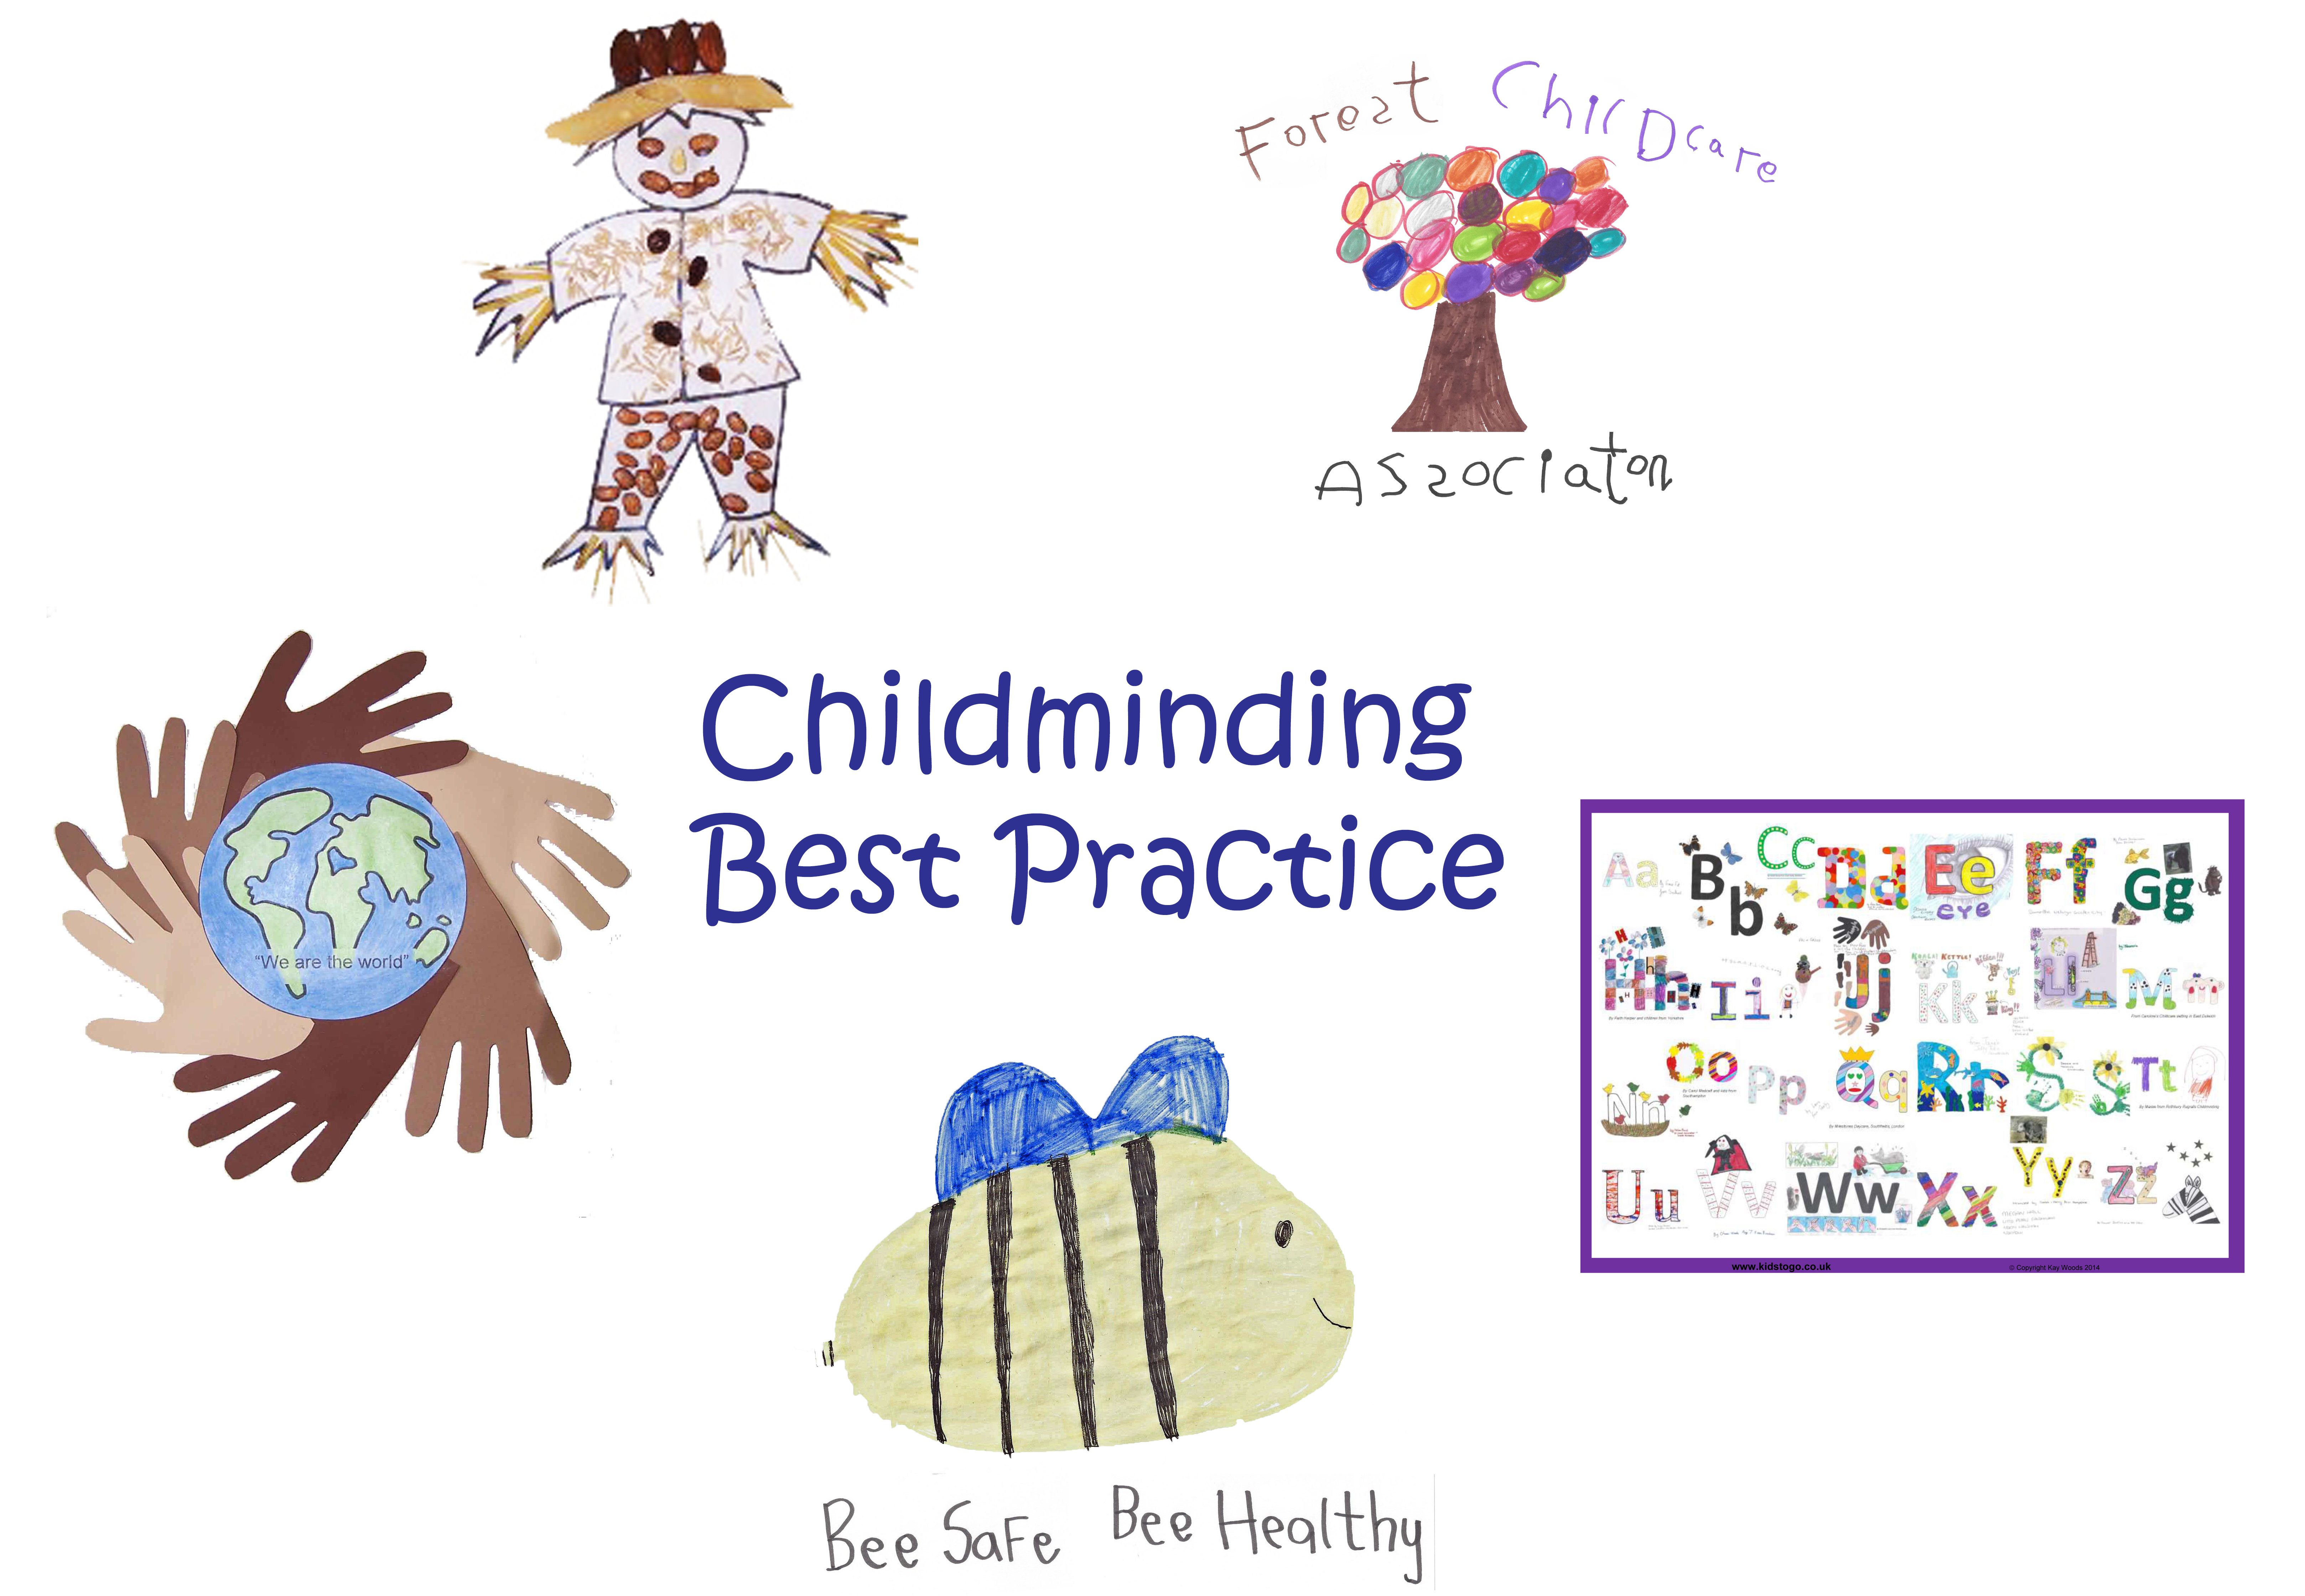 childminding-best-practice-home-page-image-small